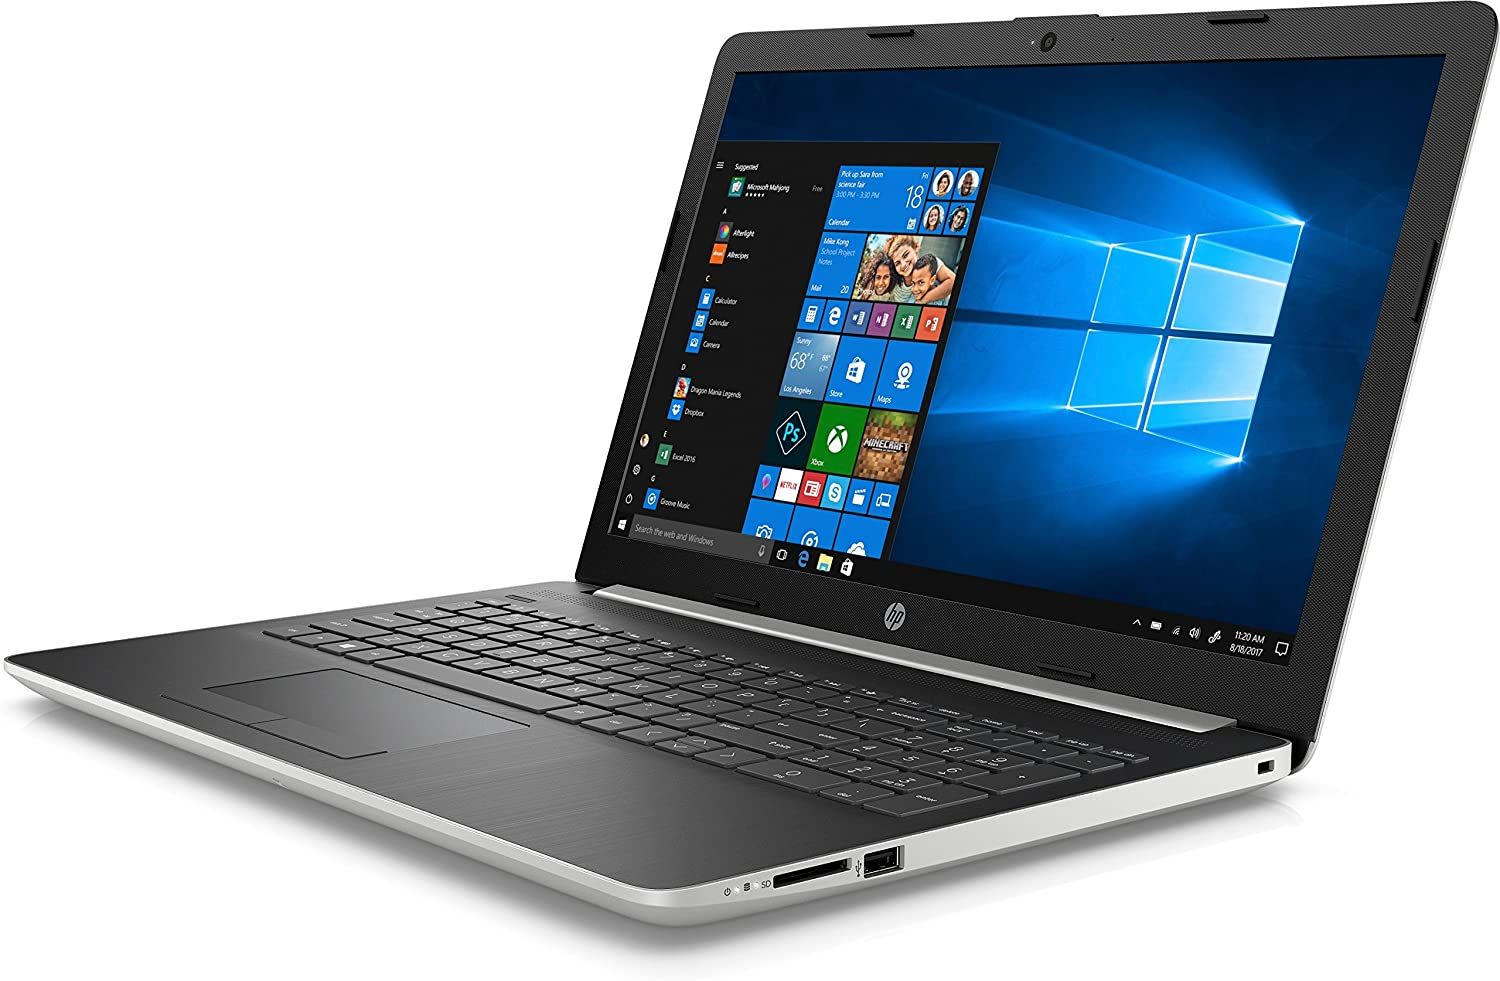 PORTÁTIL HP 15-DA0061NS - I5-8250U 1.6GHZ - 12GB - 1TB - GEFORCE MX110 2GB - 15.6/39.6CM - HDMI - WiFi BGN/AC - BT - W10 - PLAT: Hp: Amazon.es: Informática